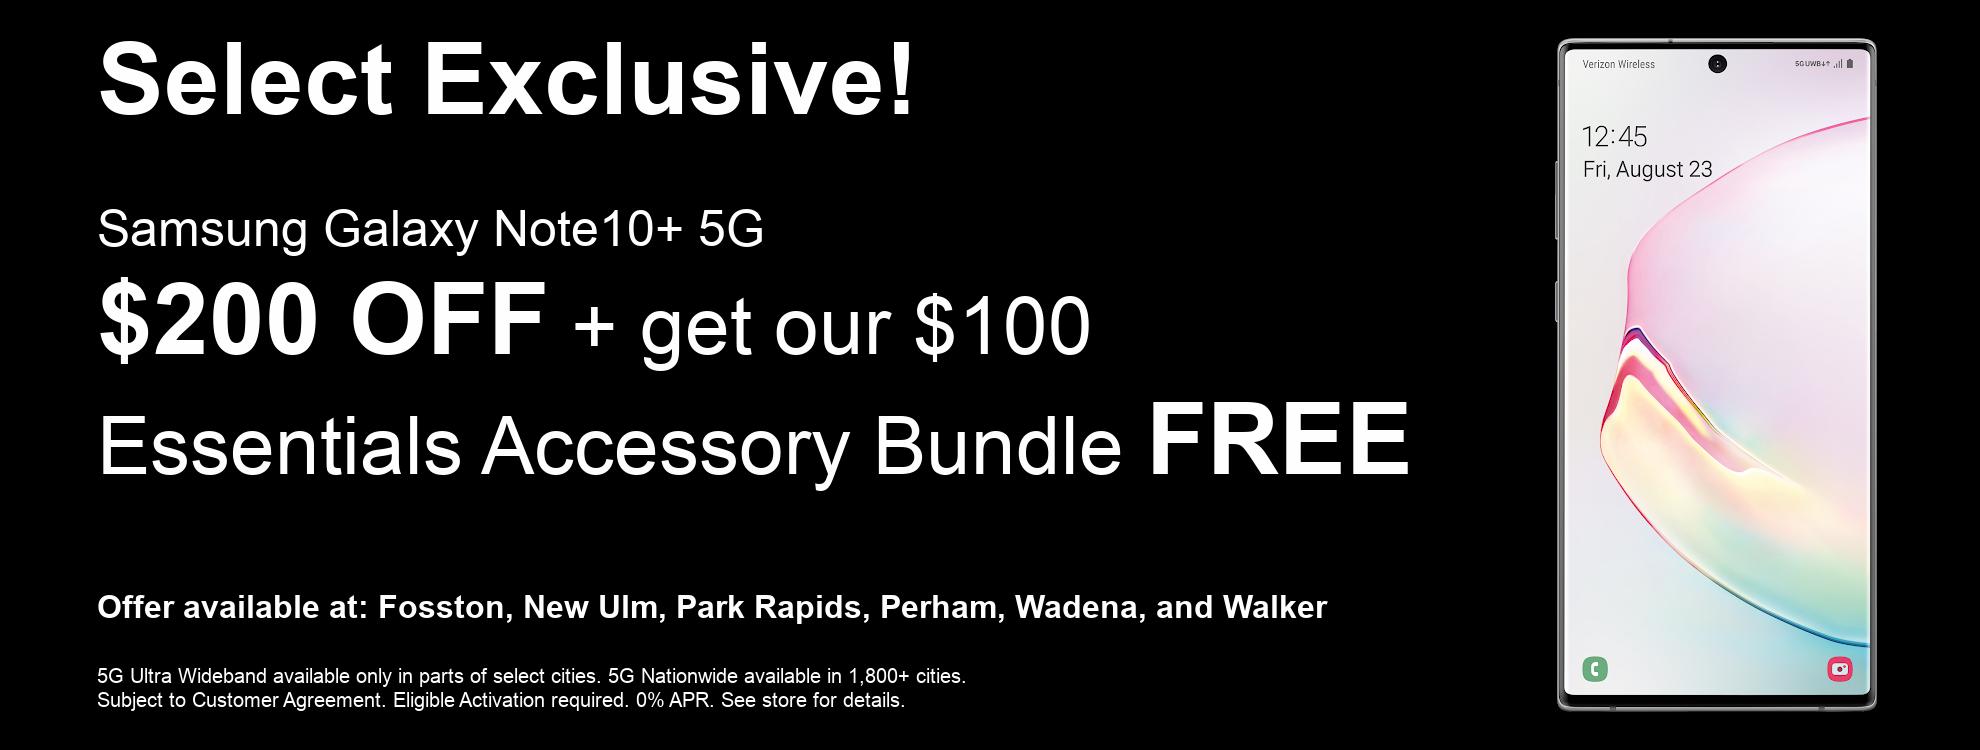 Samsung Galaxy Note 10+ 5G Exclusive Offer